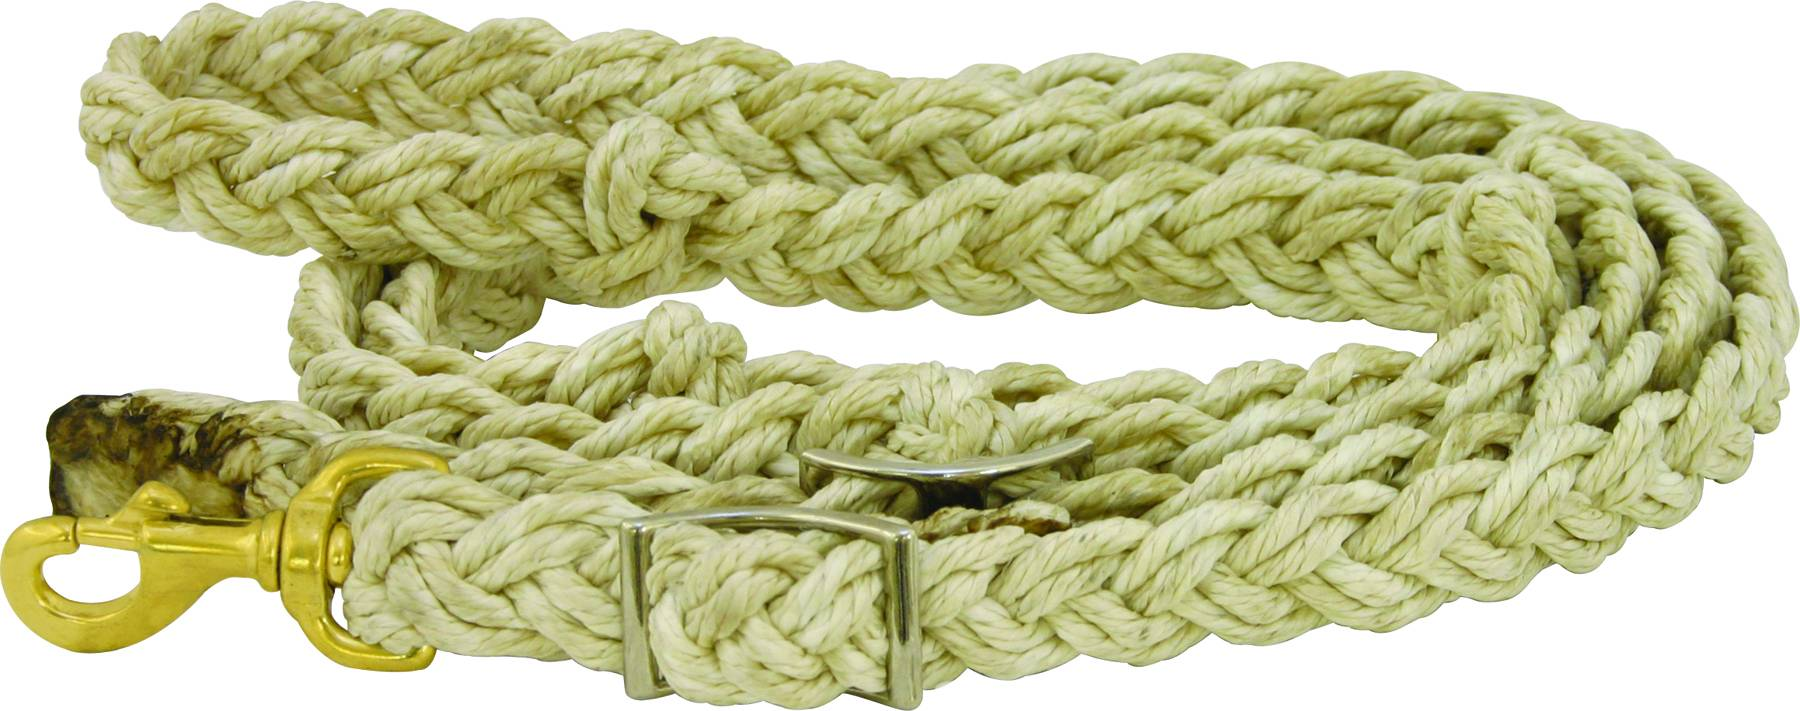 ABETTA Barrel Reins Braided with Knots